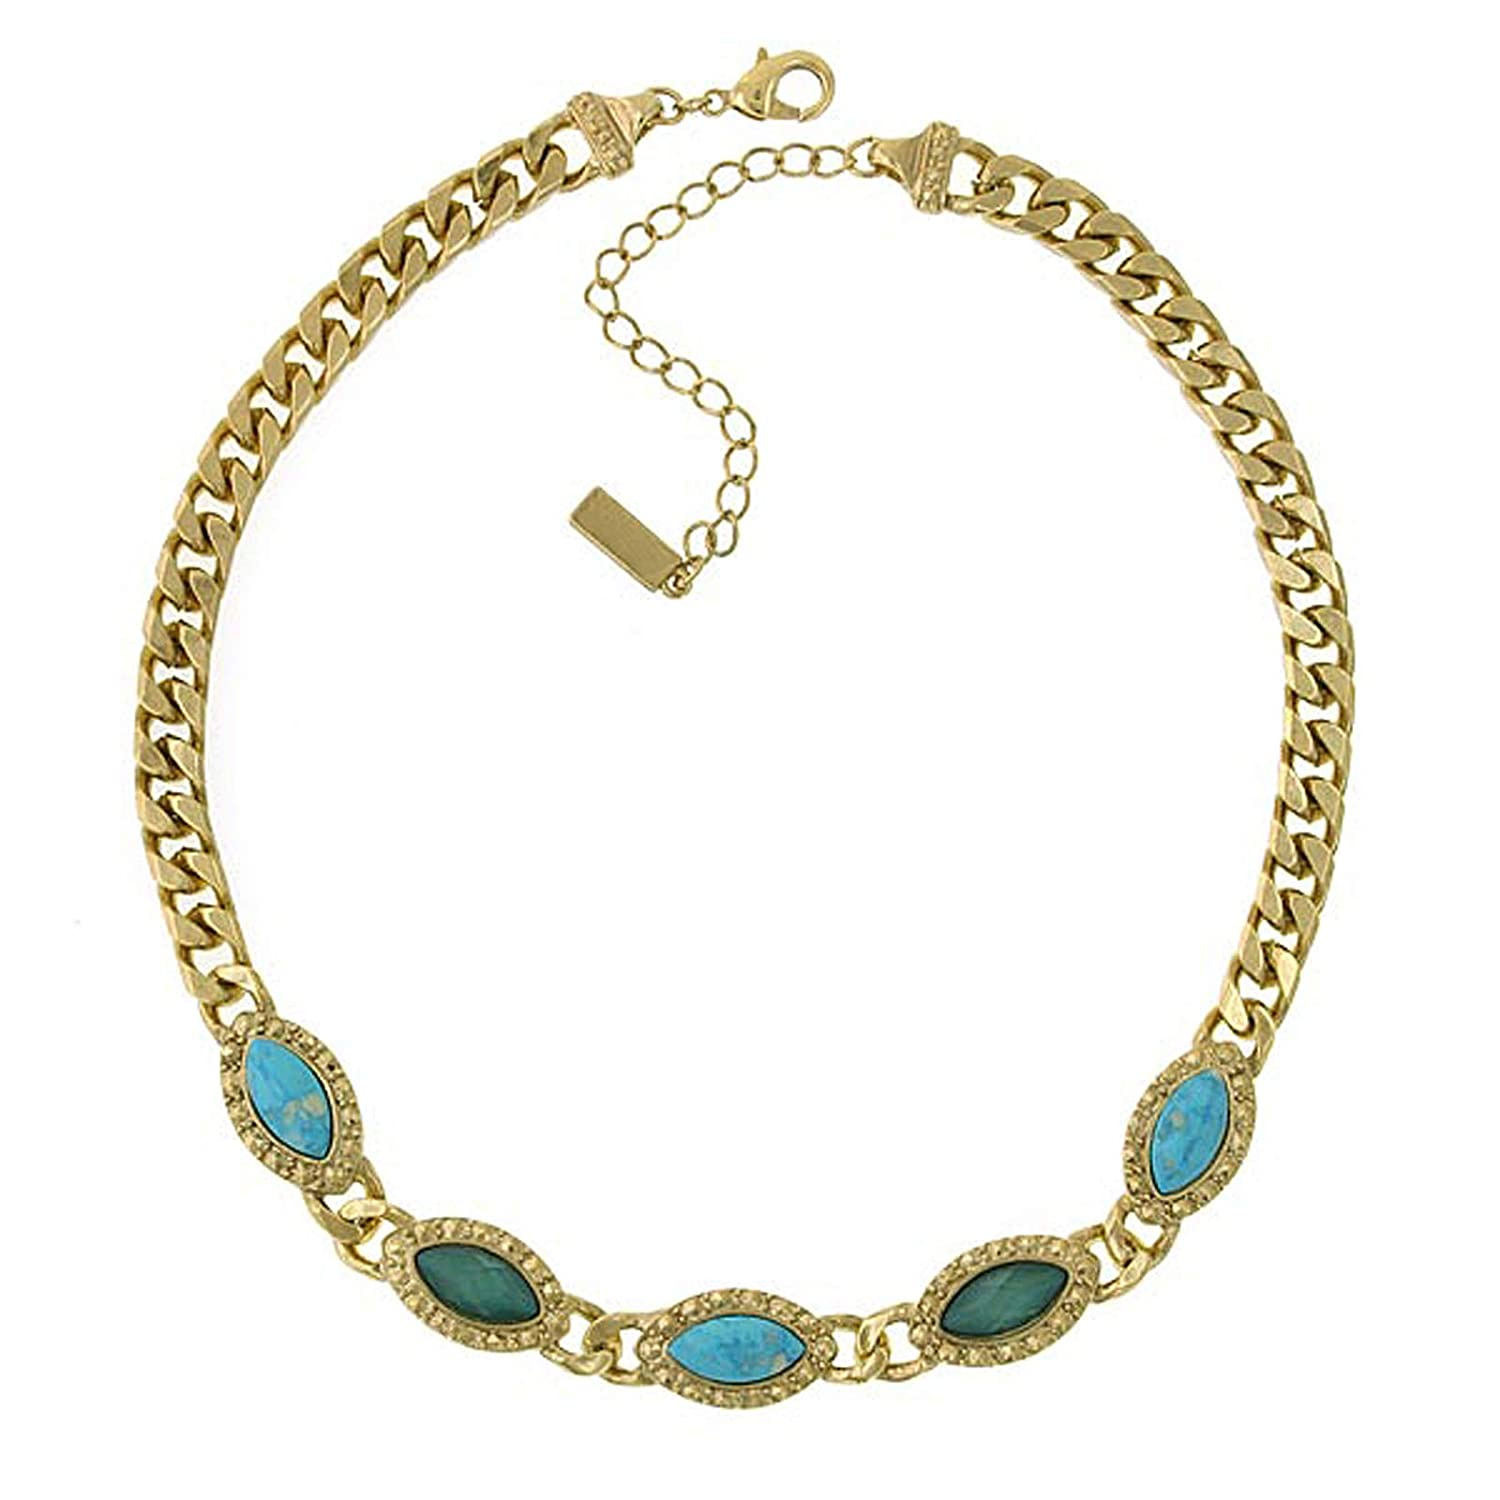 1928 Jewelry Gold-Tone Green and Turquoise Color Collar Chain Statement Necklace 16 Adj.